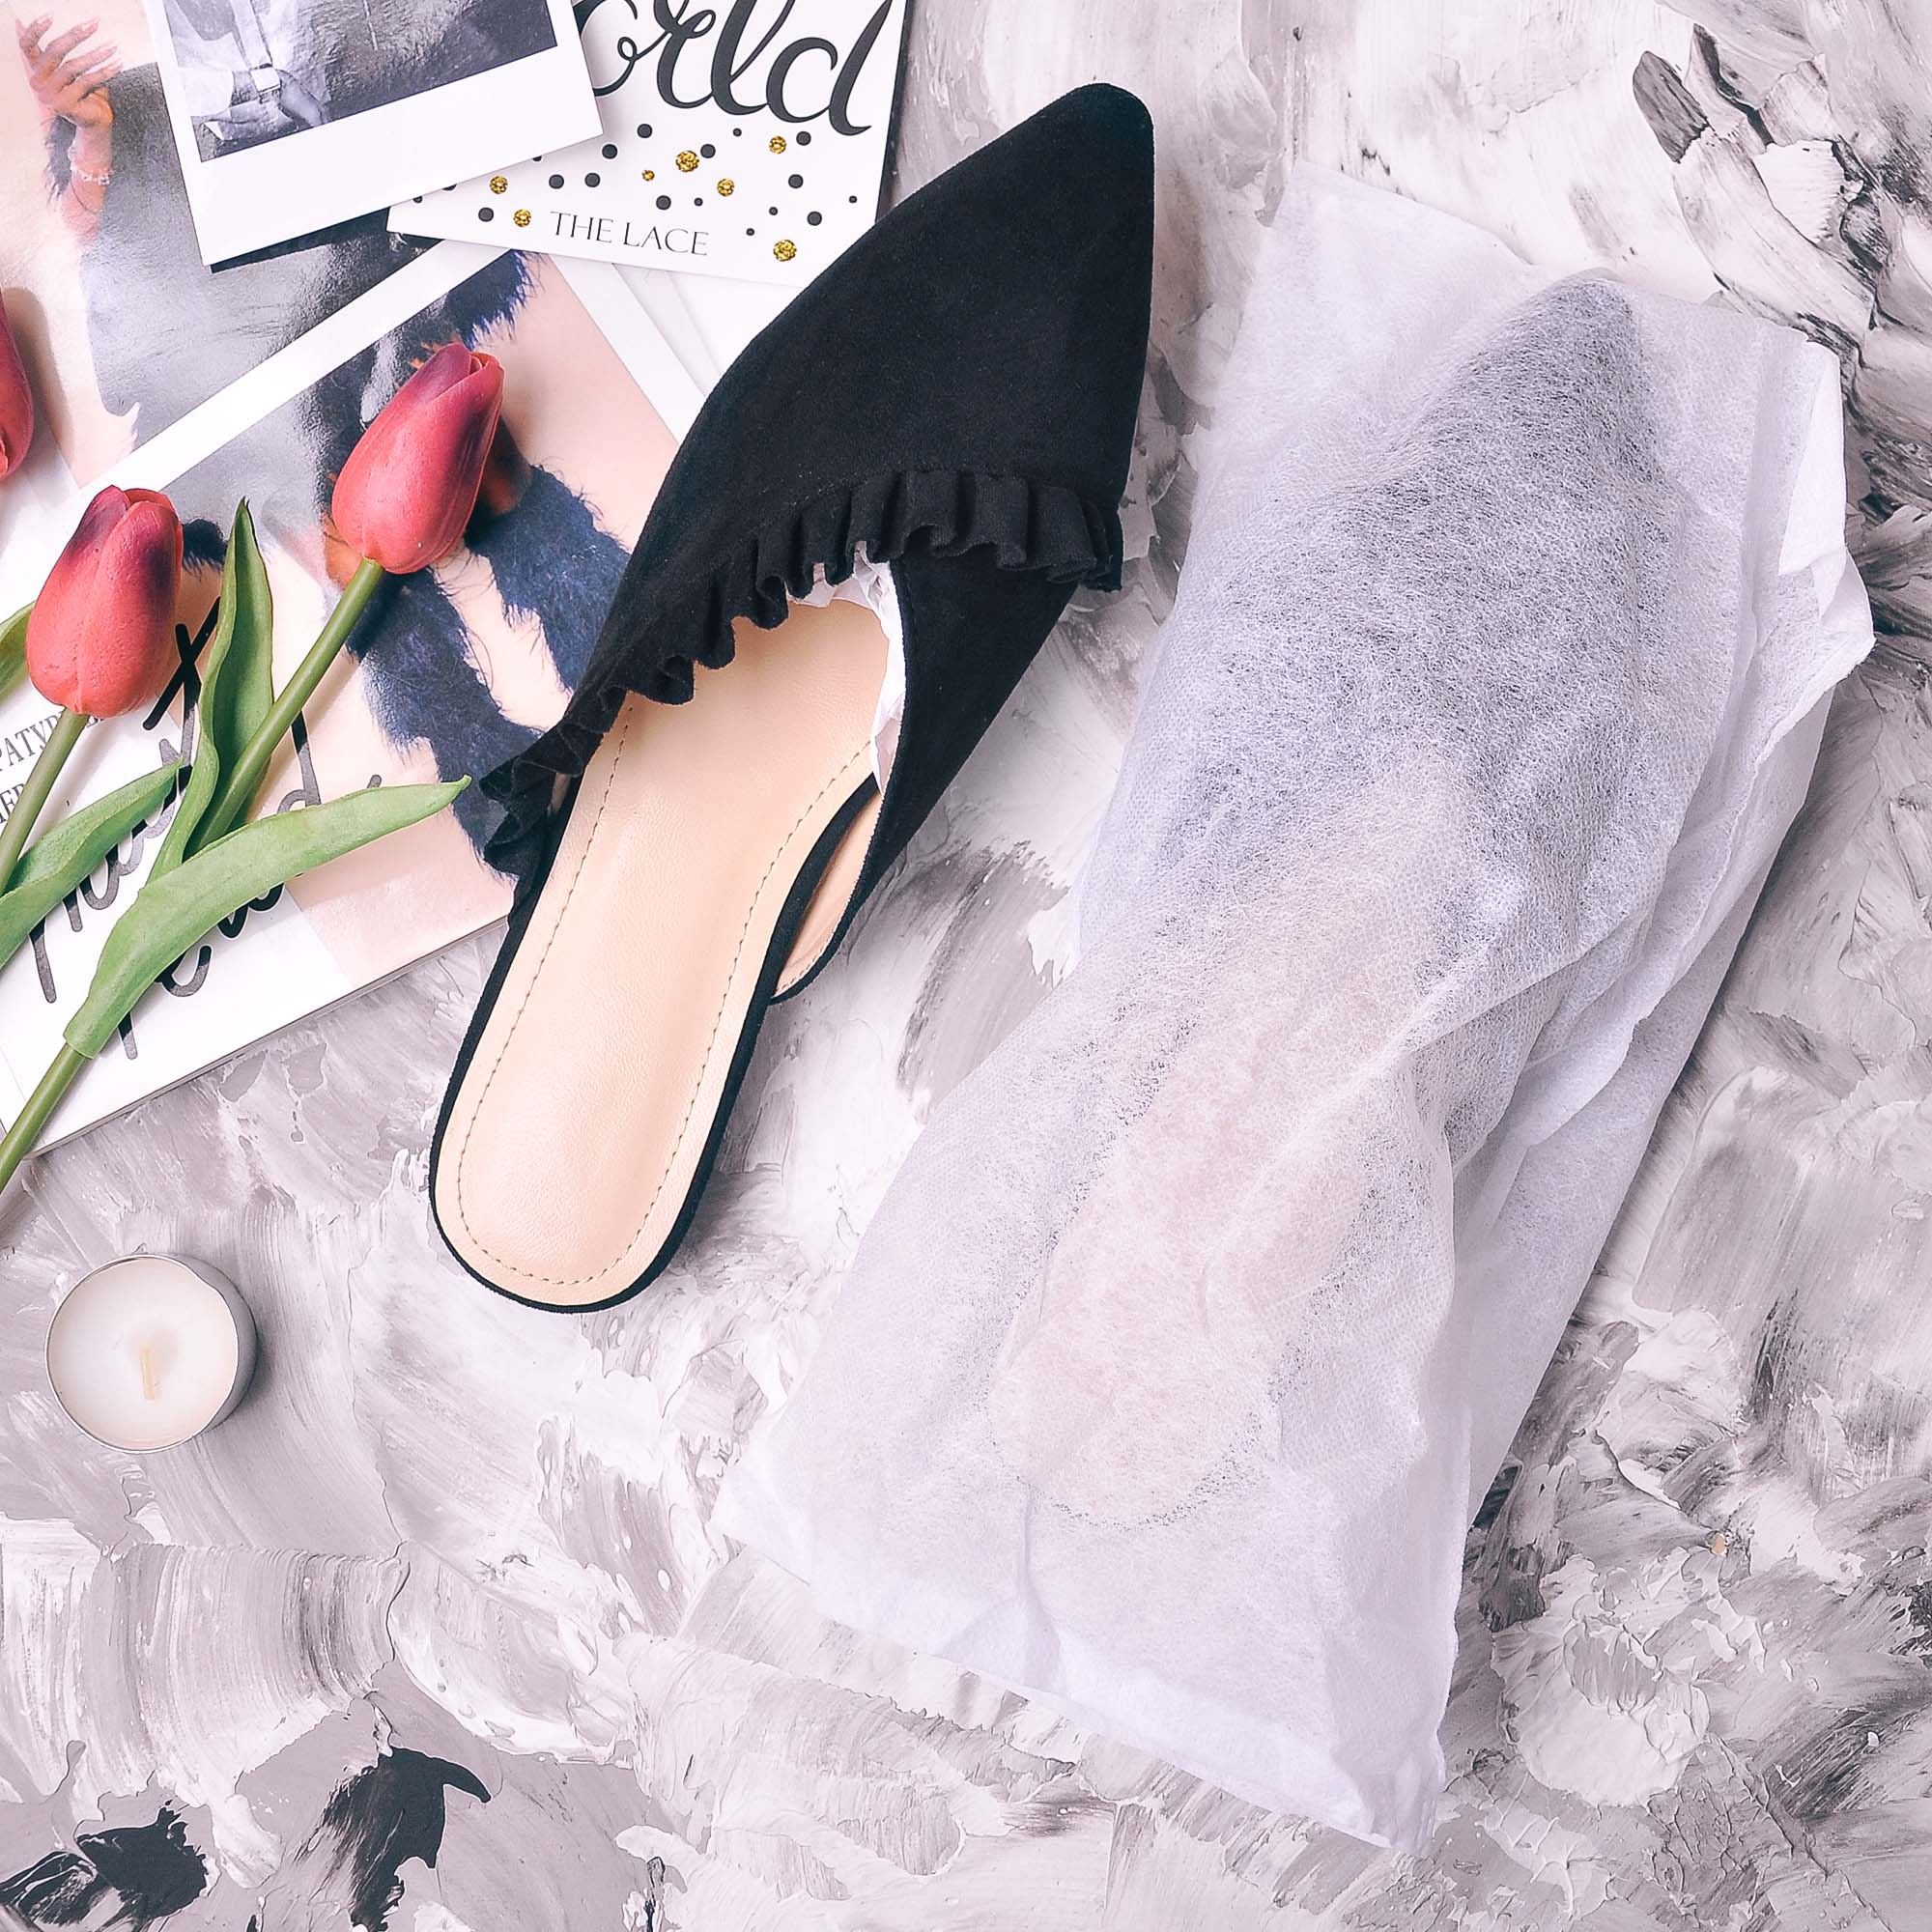 2019 New Spring Summer Women Slippers Shoes Woman Mules Shoes Pointed Toe Half Slippers Outside Slides Flip Flops Size 36 41 in Slippers from Shoes